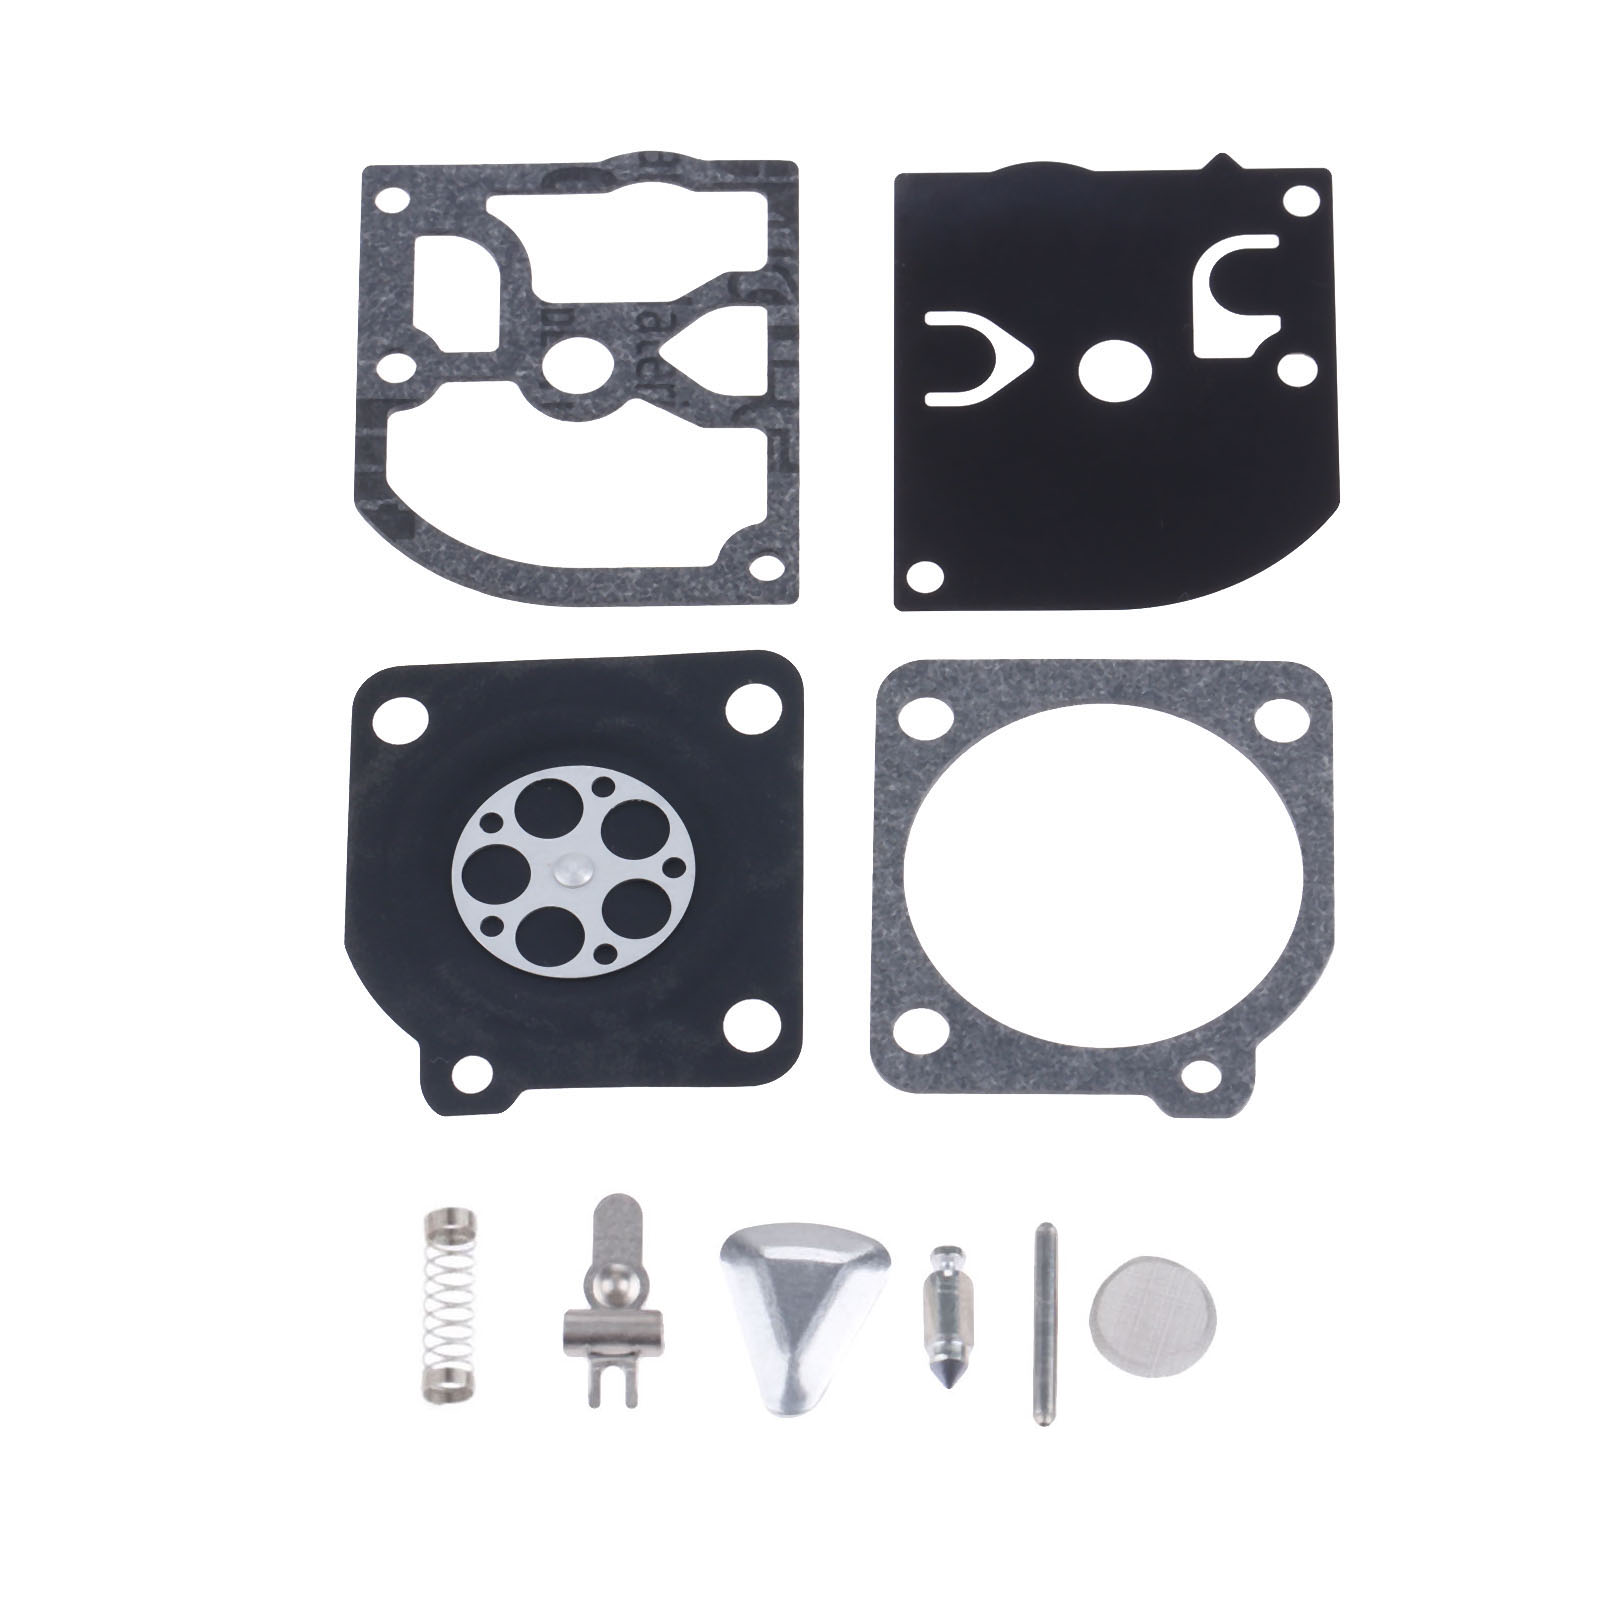 DRELD RB-45 Carburetor Carb Repair Rebuild Overhaul Kit For HUSQVARNAA 40 45 50 51 55 Chainsaw ZAMA RB-45 / RB45